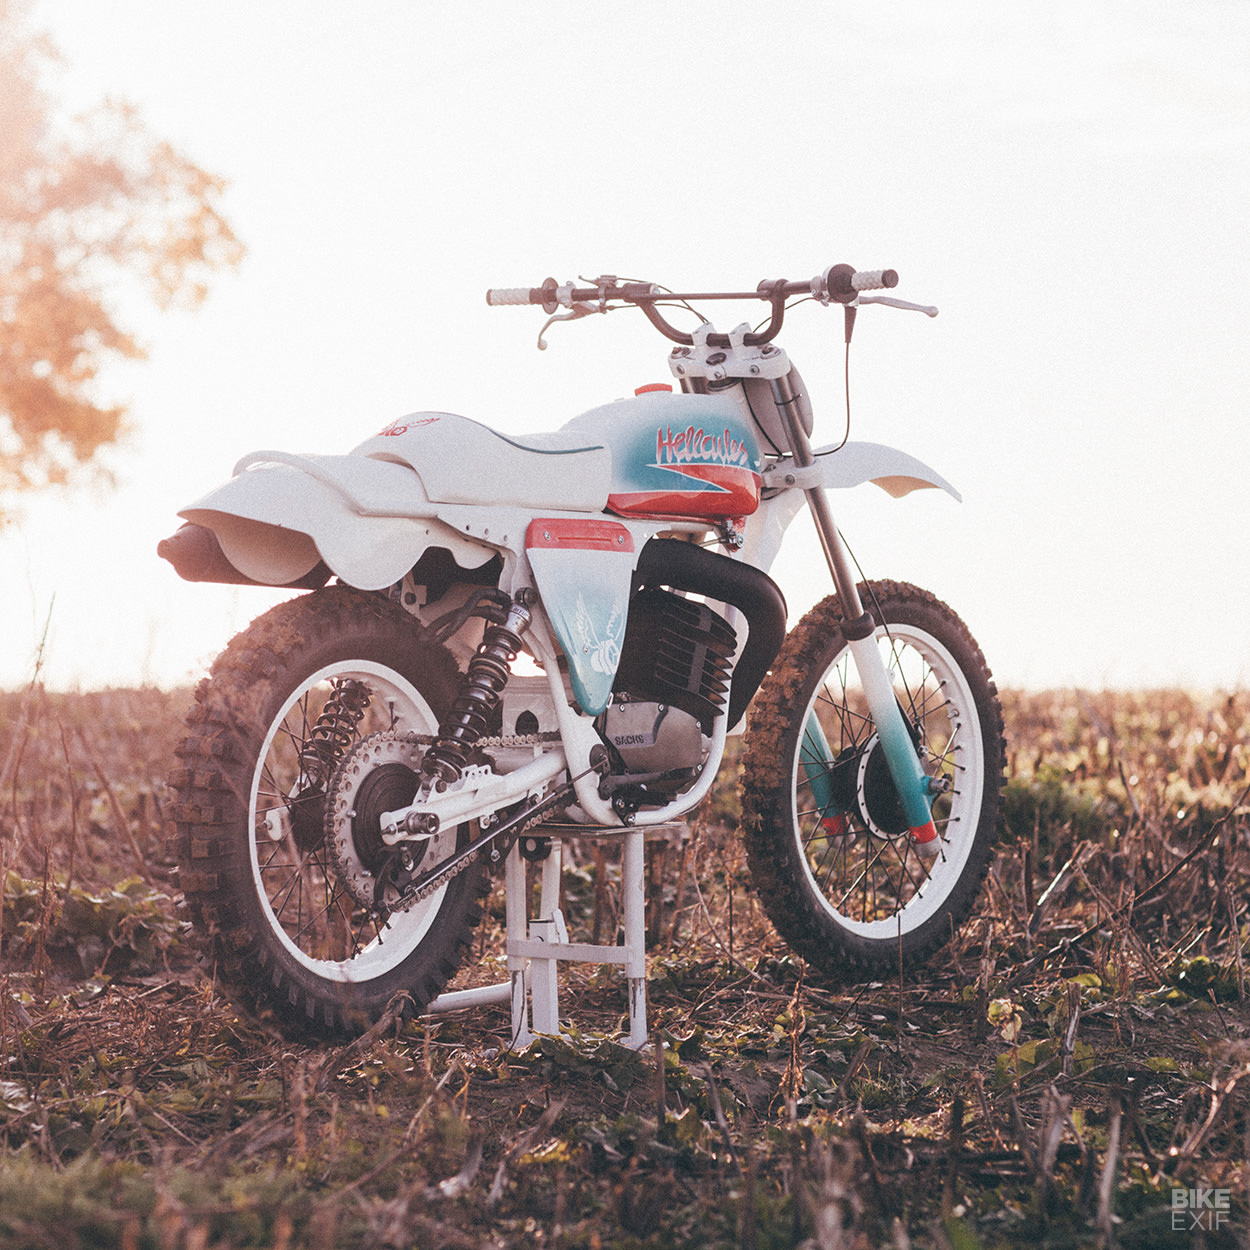 Restomod: A Hercules GS250 scrambler from The Loose Screw in Germany